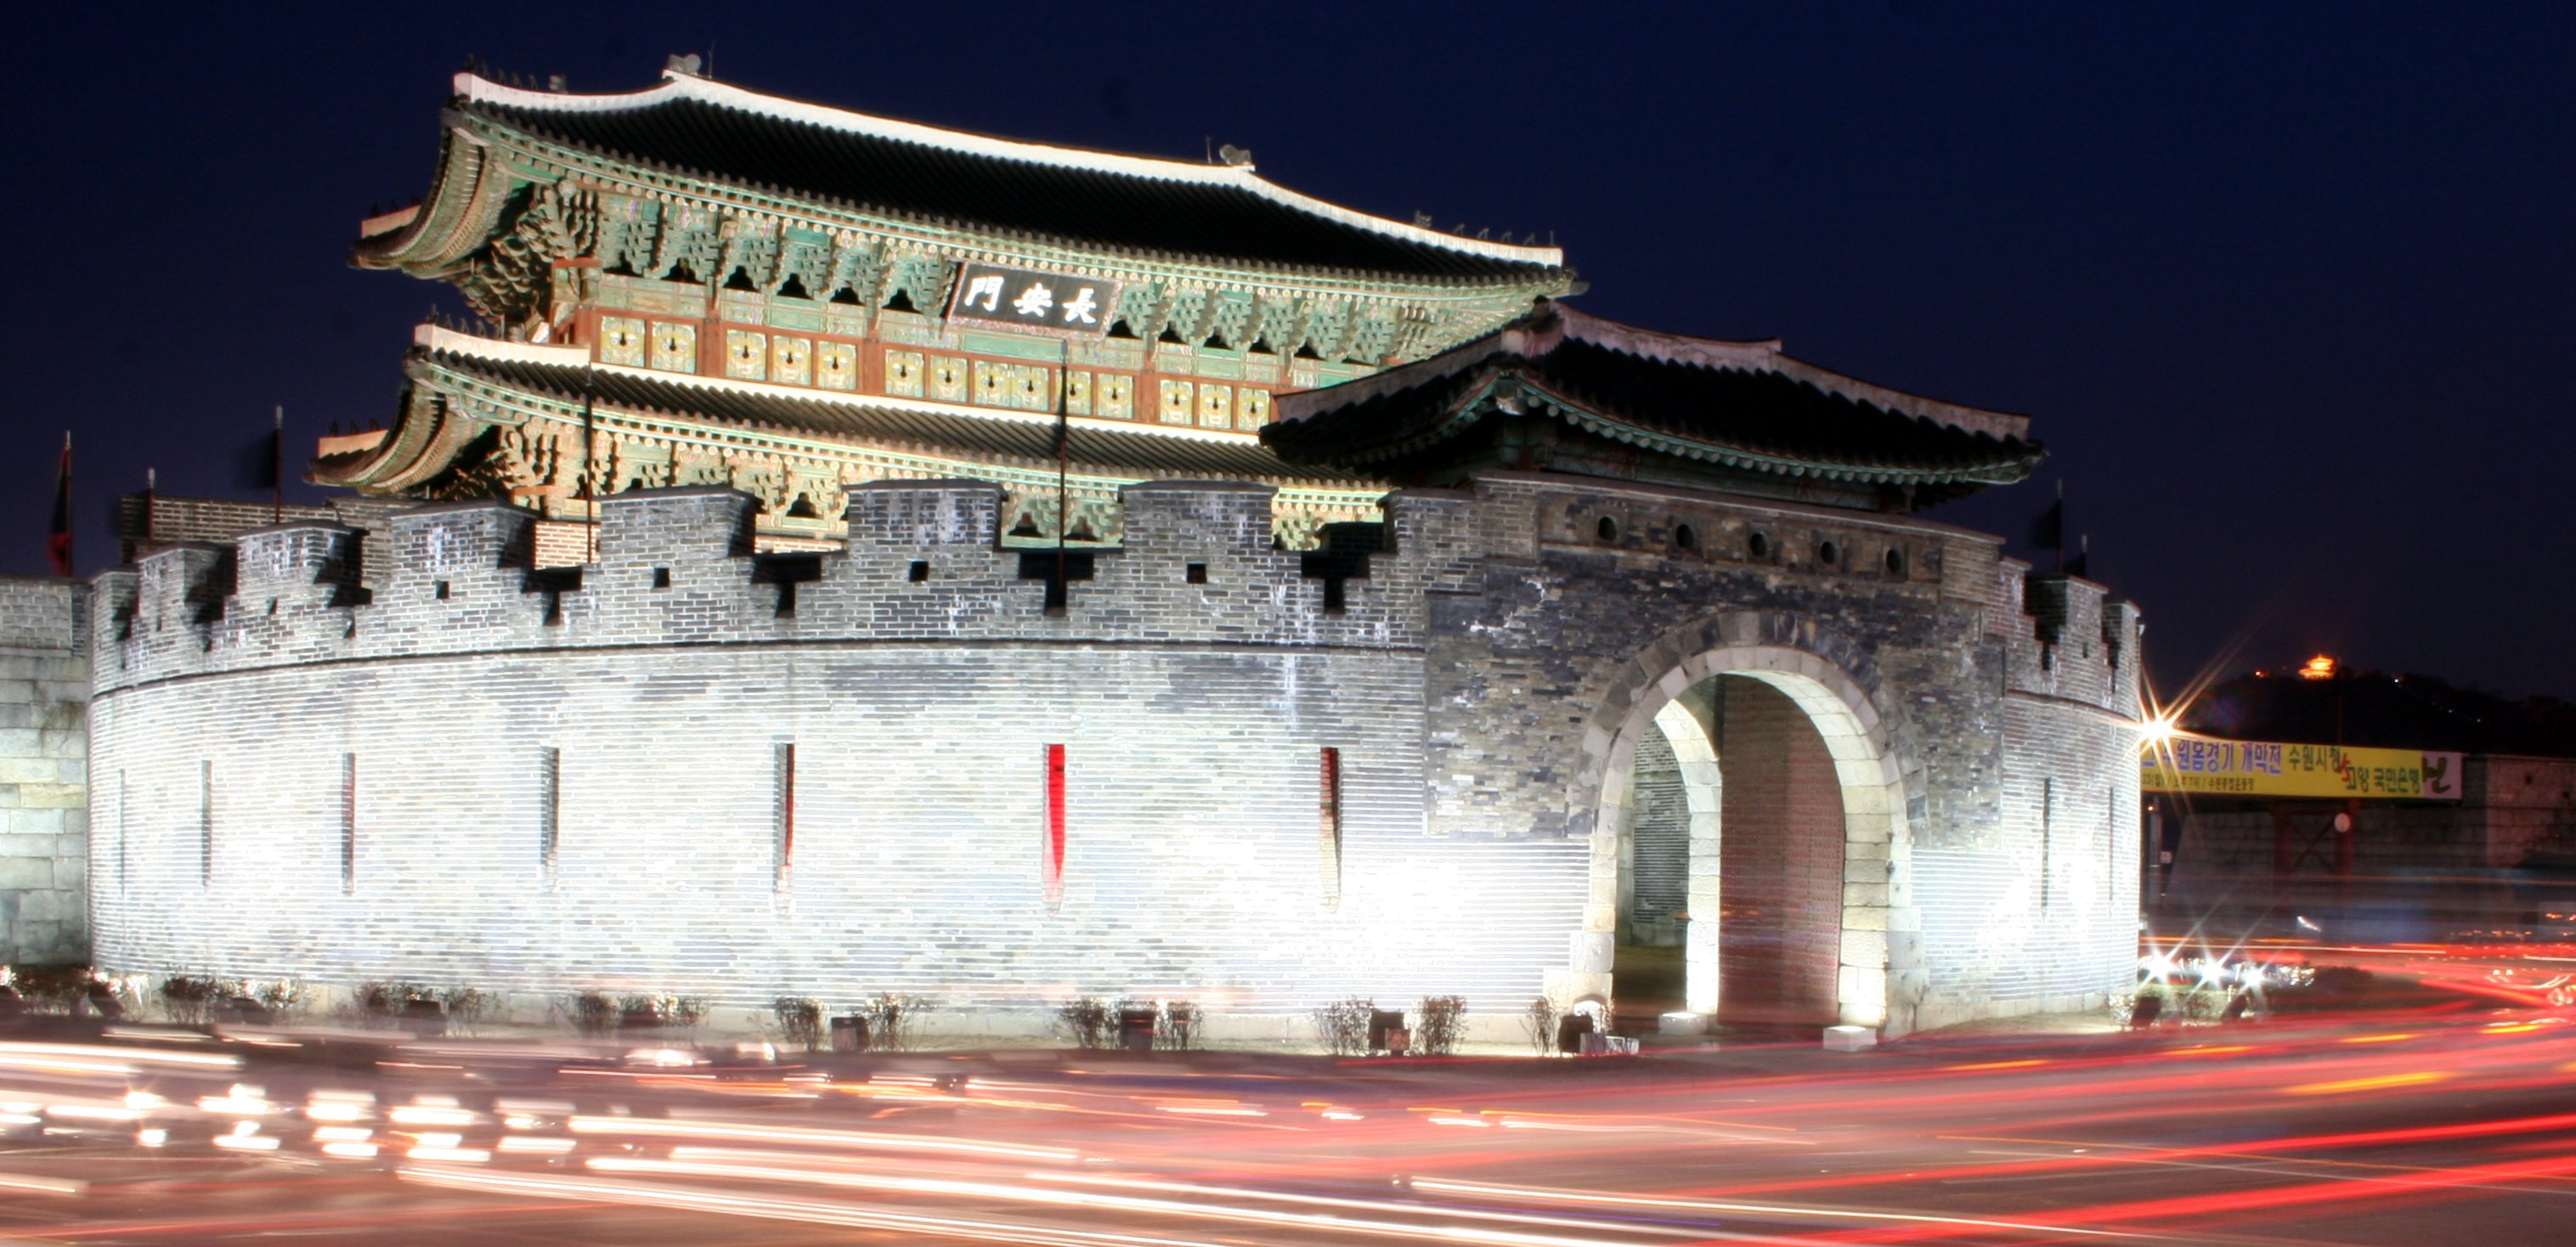 The Walled City Of Suwon